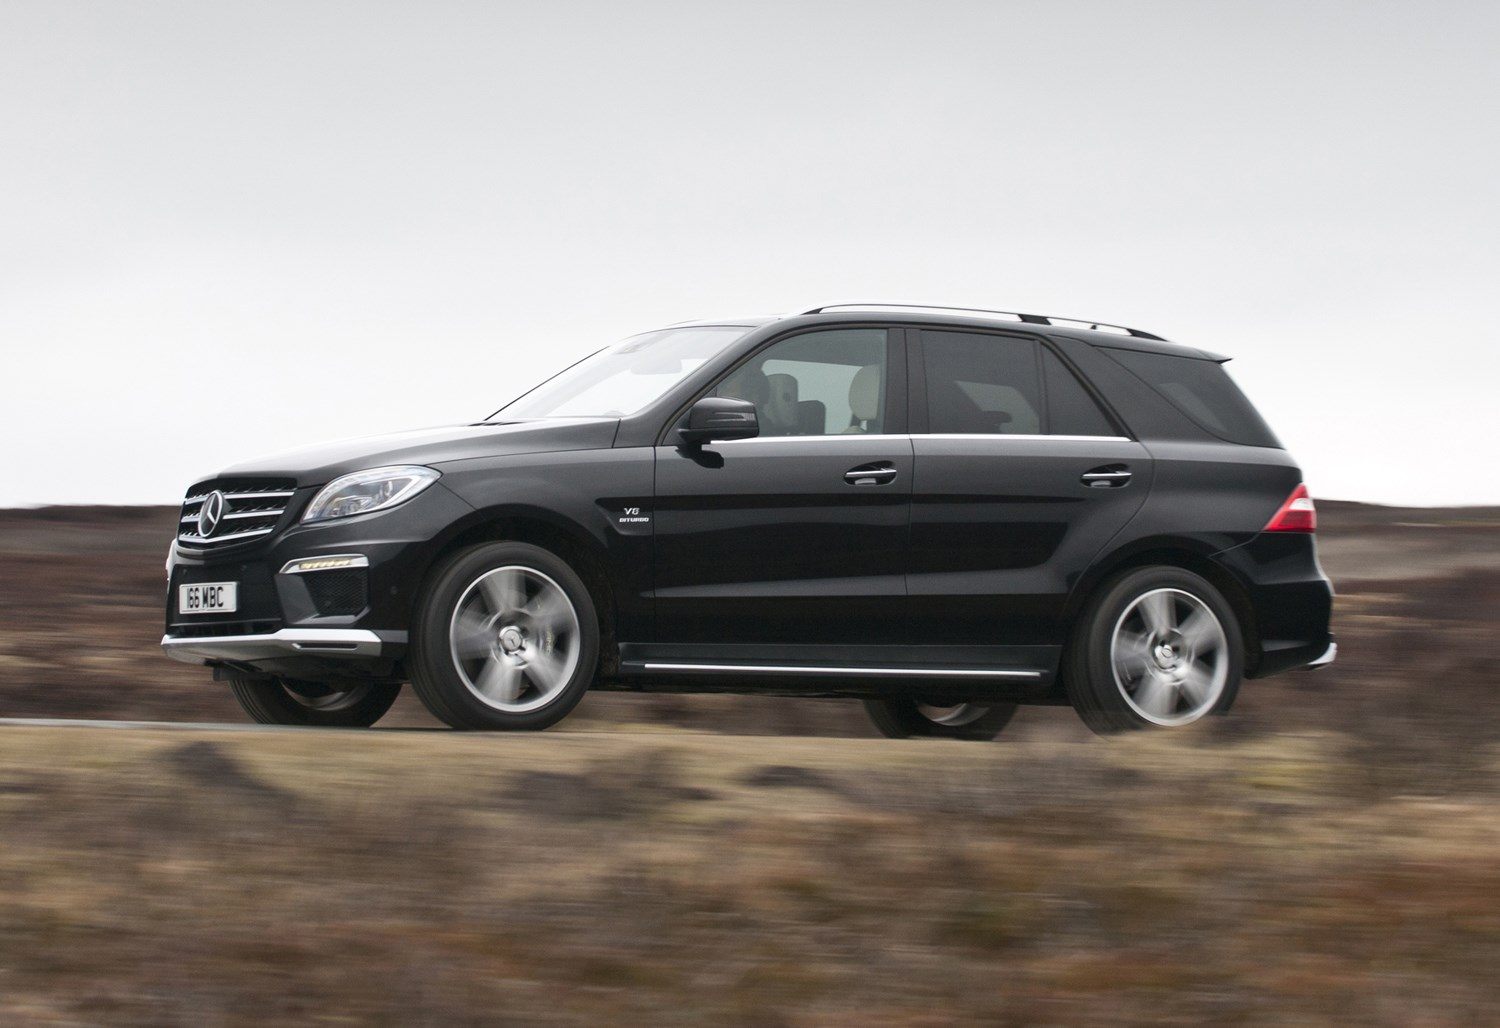 Mercedes benz m class amg 2012 2015 features for Mercedes benz ml350 accessories